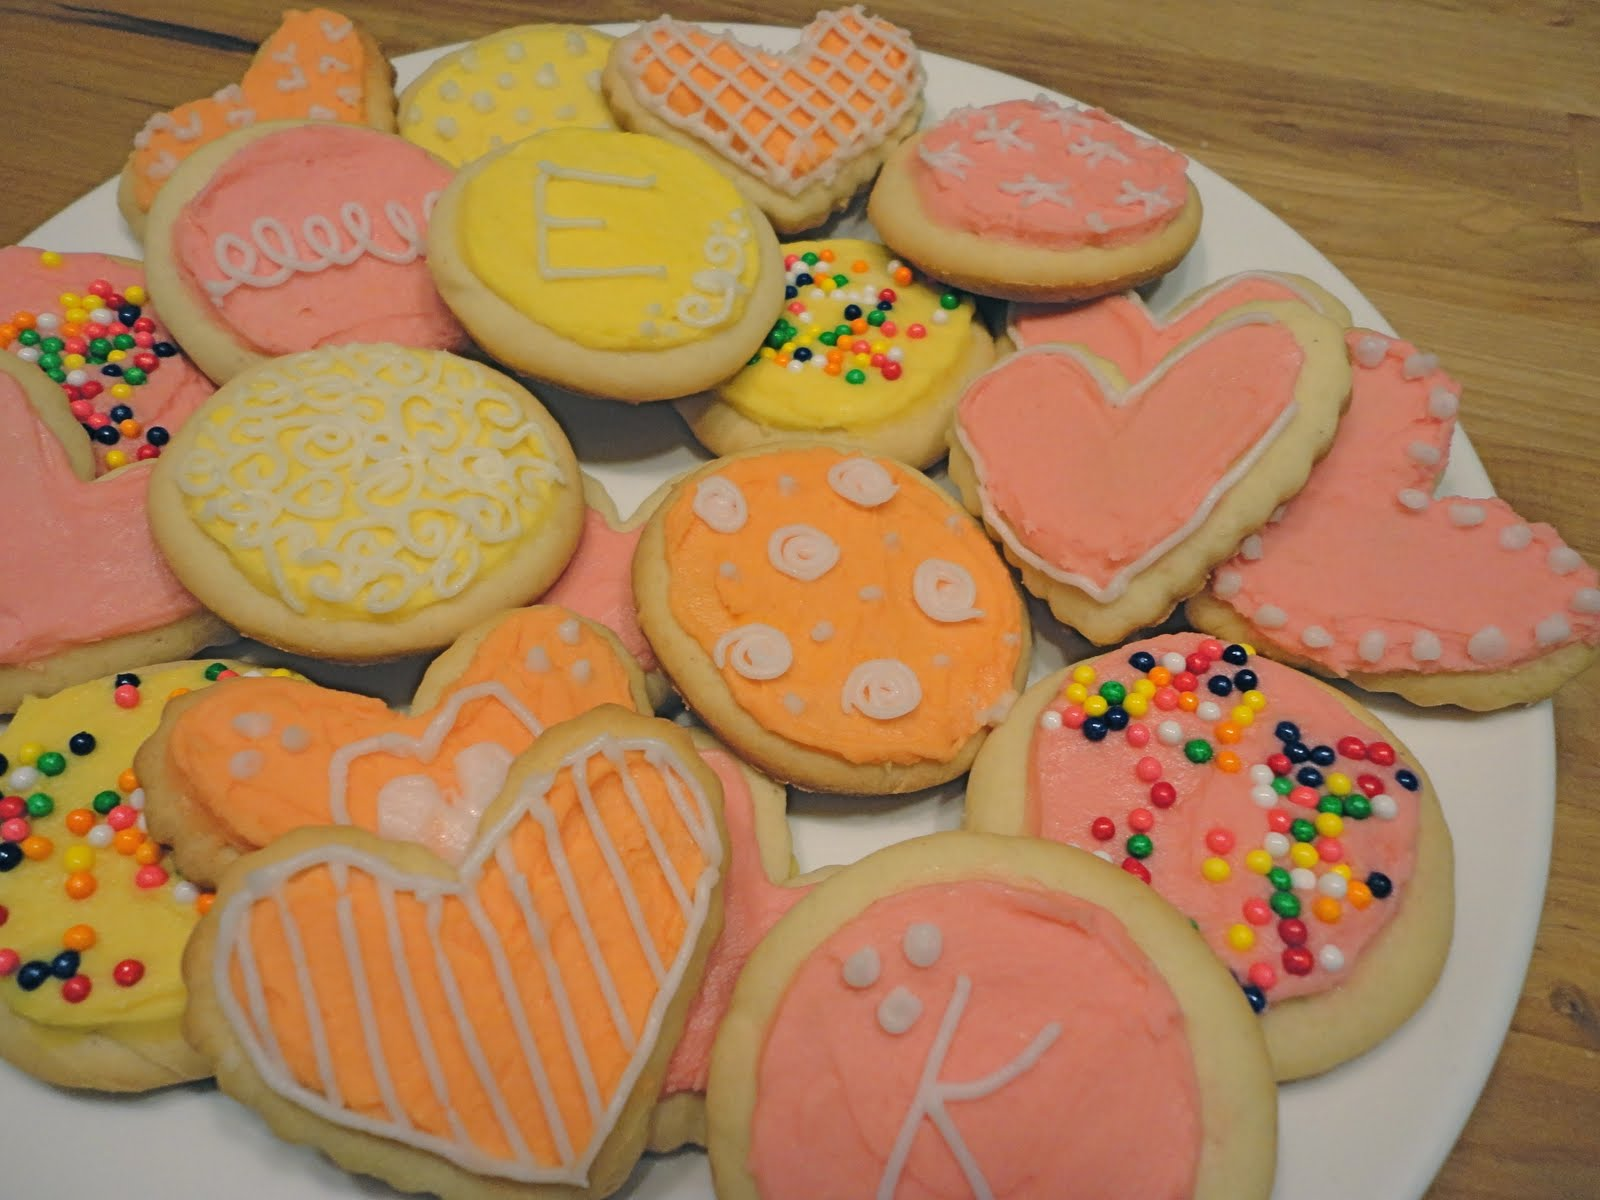 Decorator frosting recipe for sugar cookies